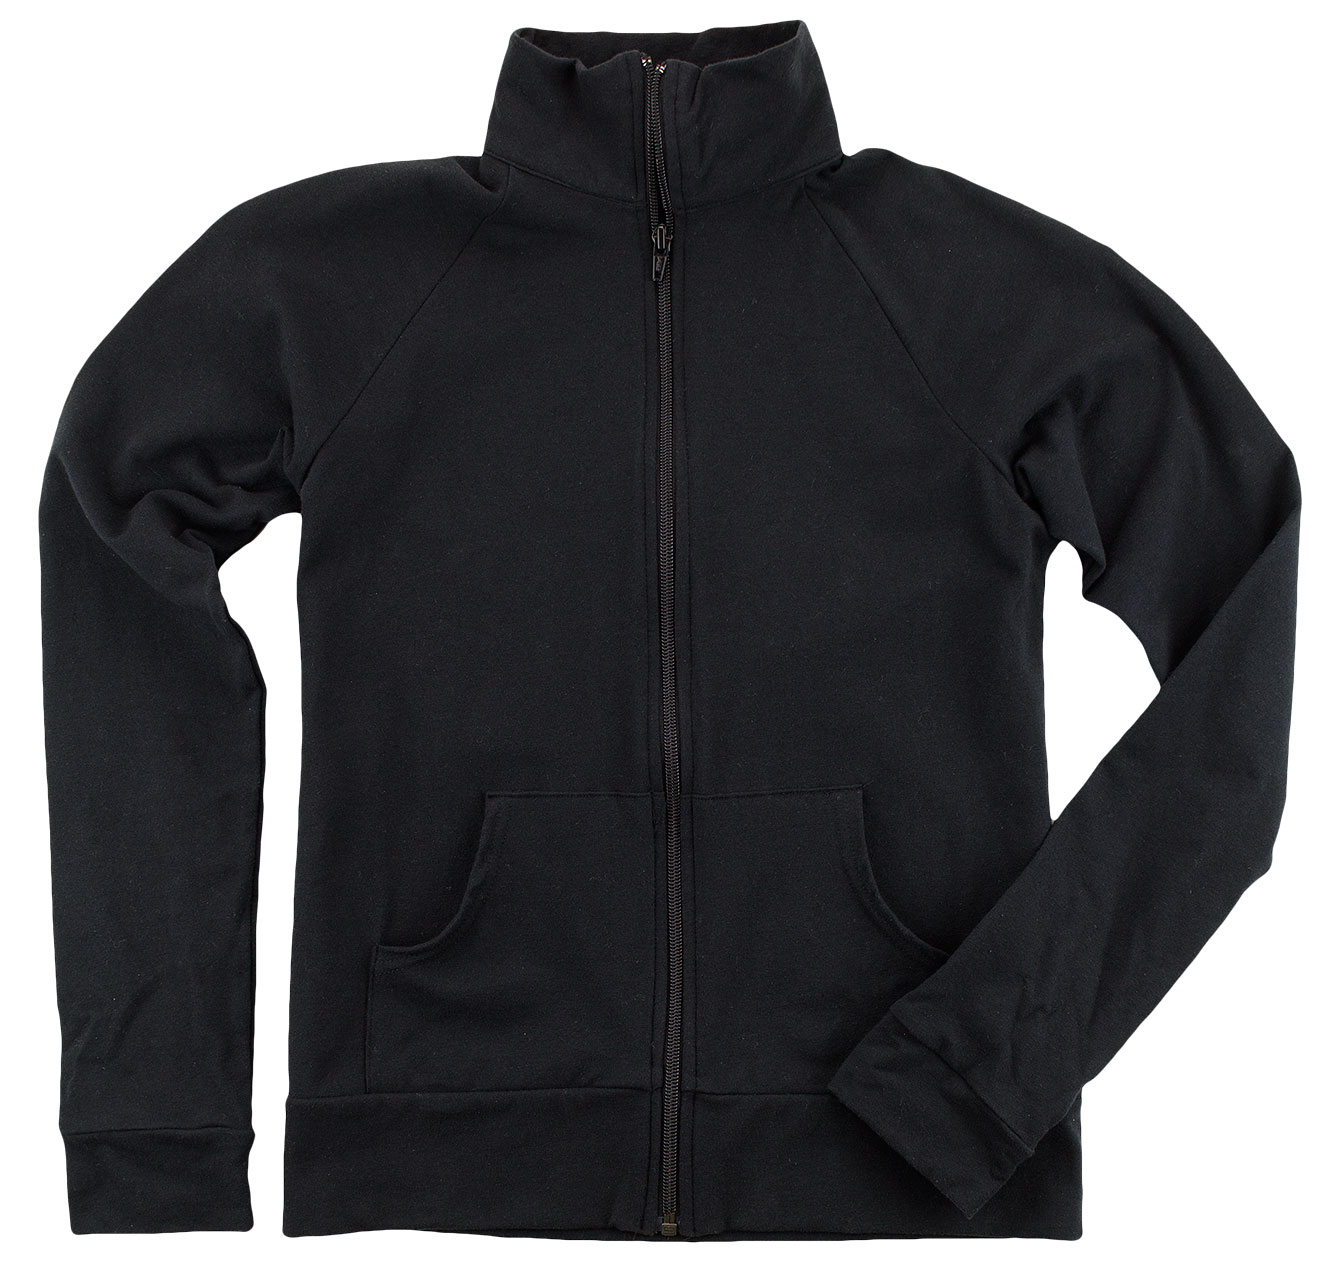 Youth Full Zip Practice Jacket